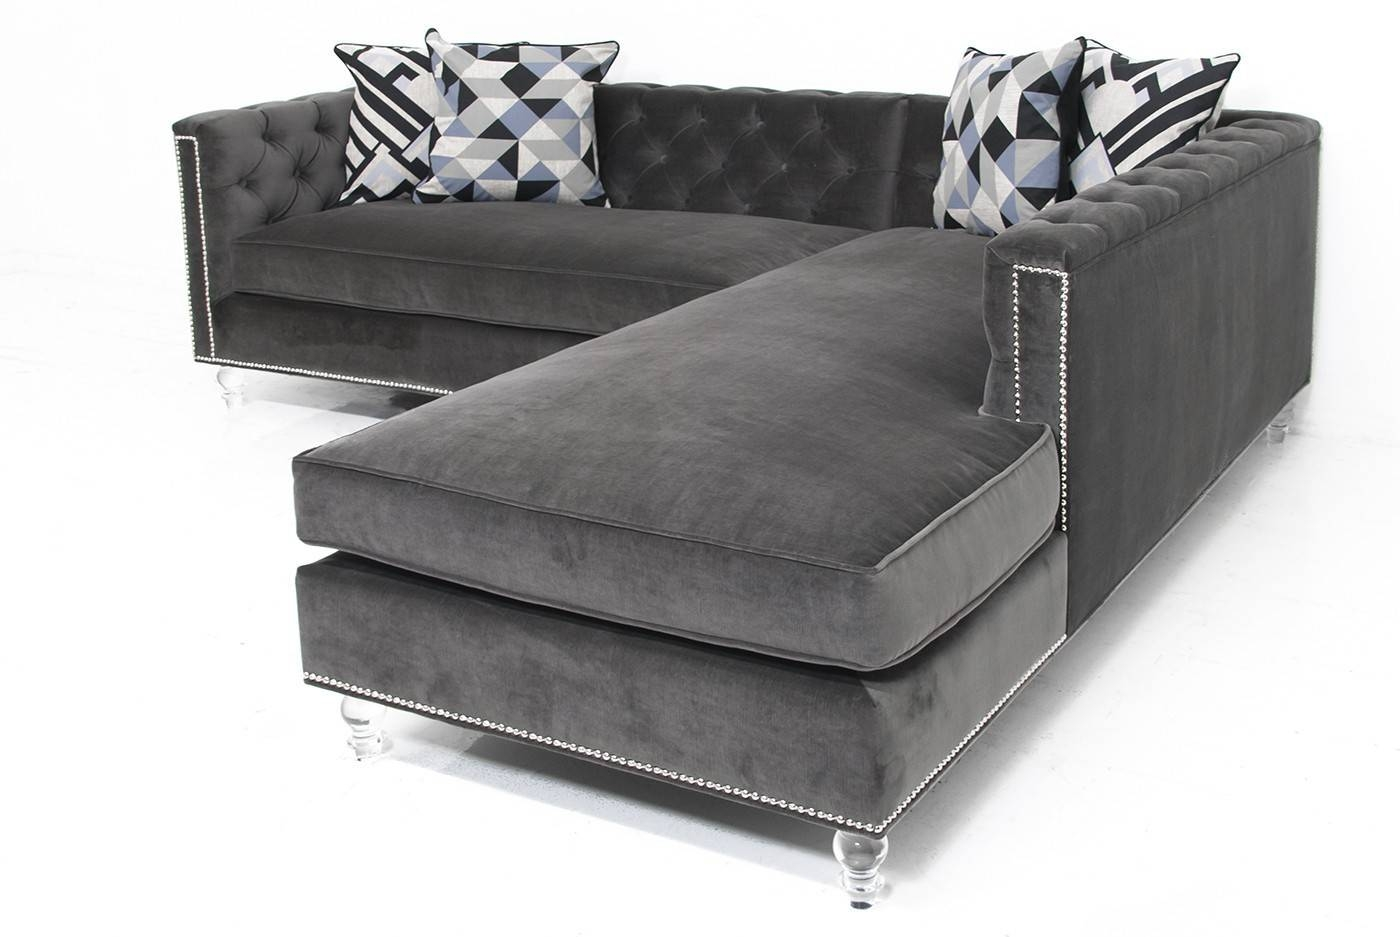 Sofa: Grey Tufted Sectional Sofa | Tufted Sectional Sofa in Tufted Sectional Sofa With Chaise (Image 19 of 30)